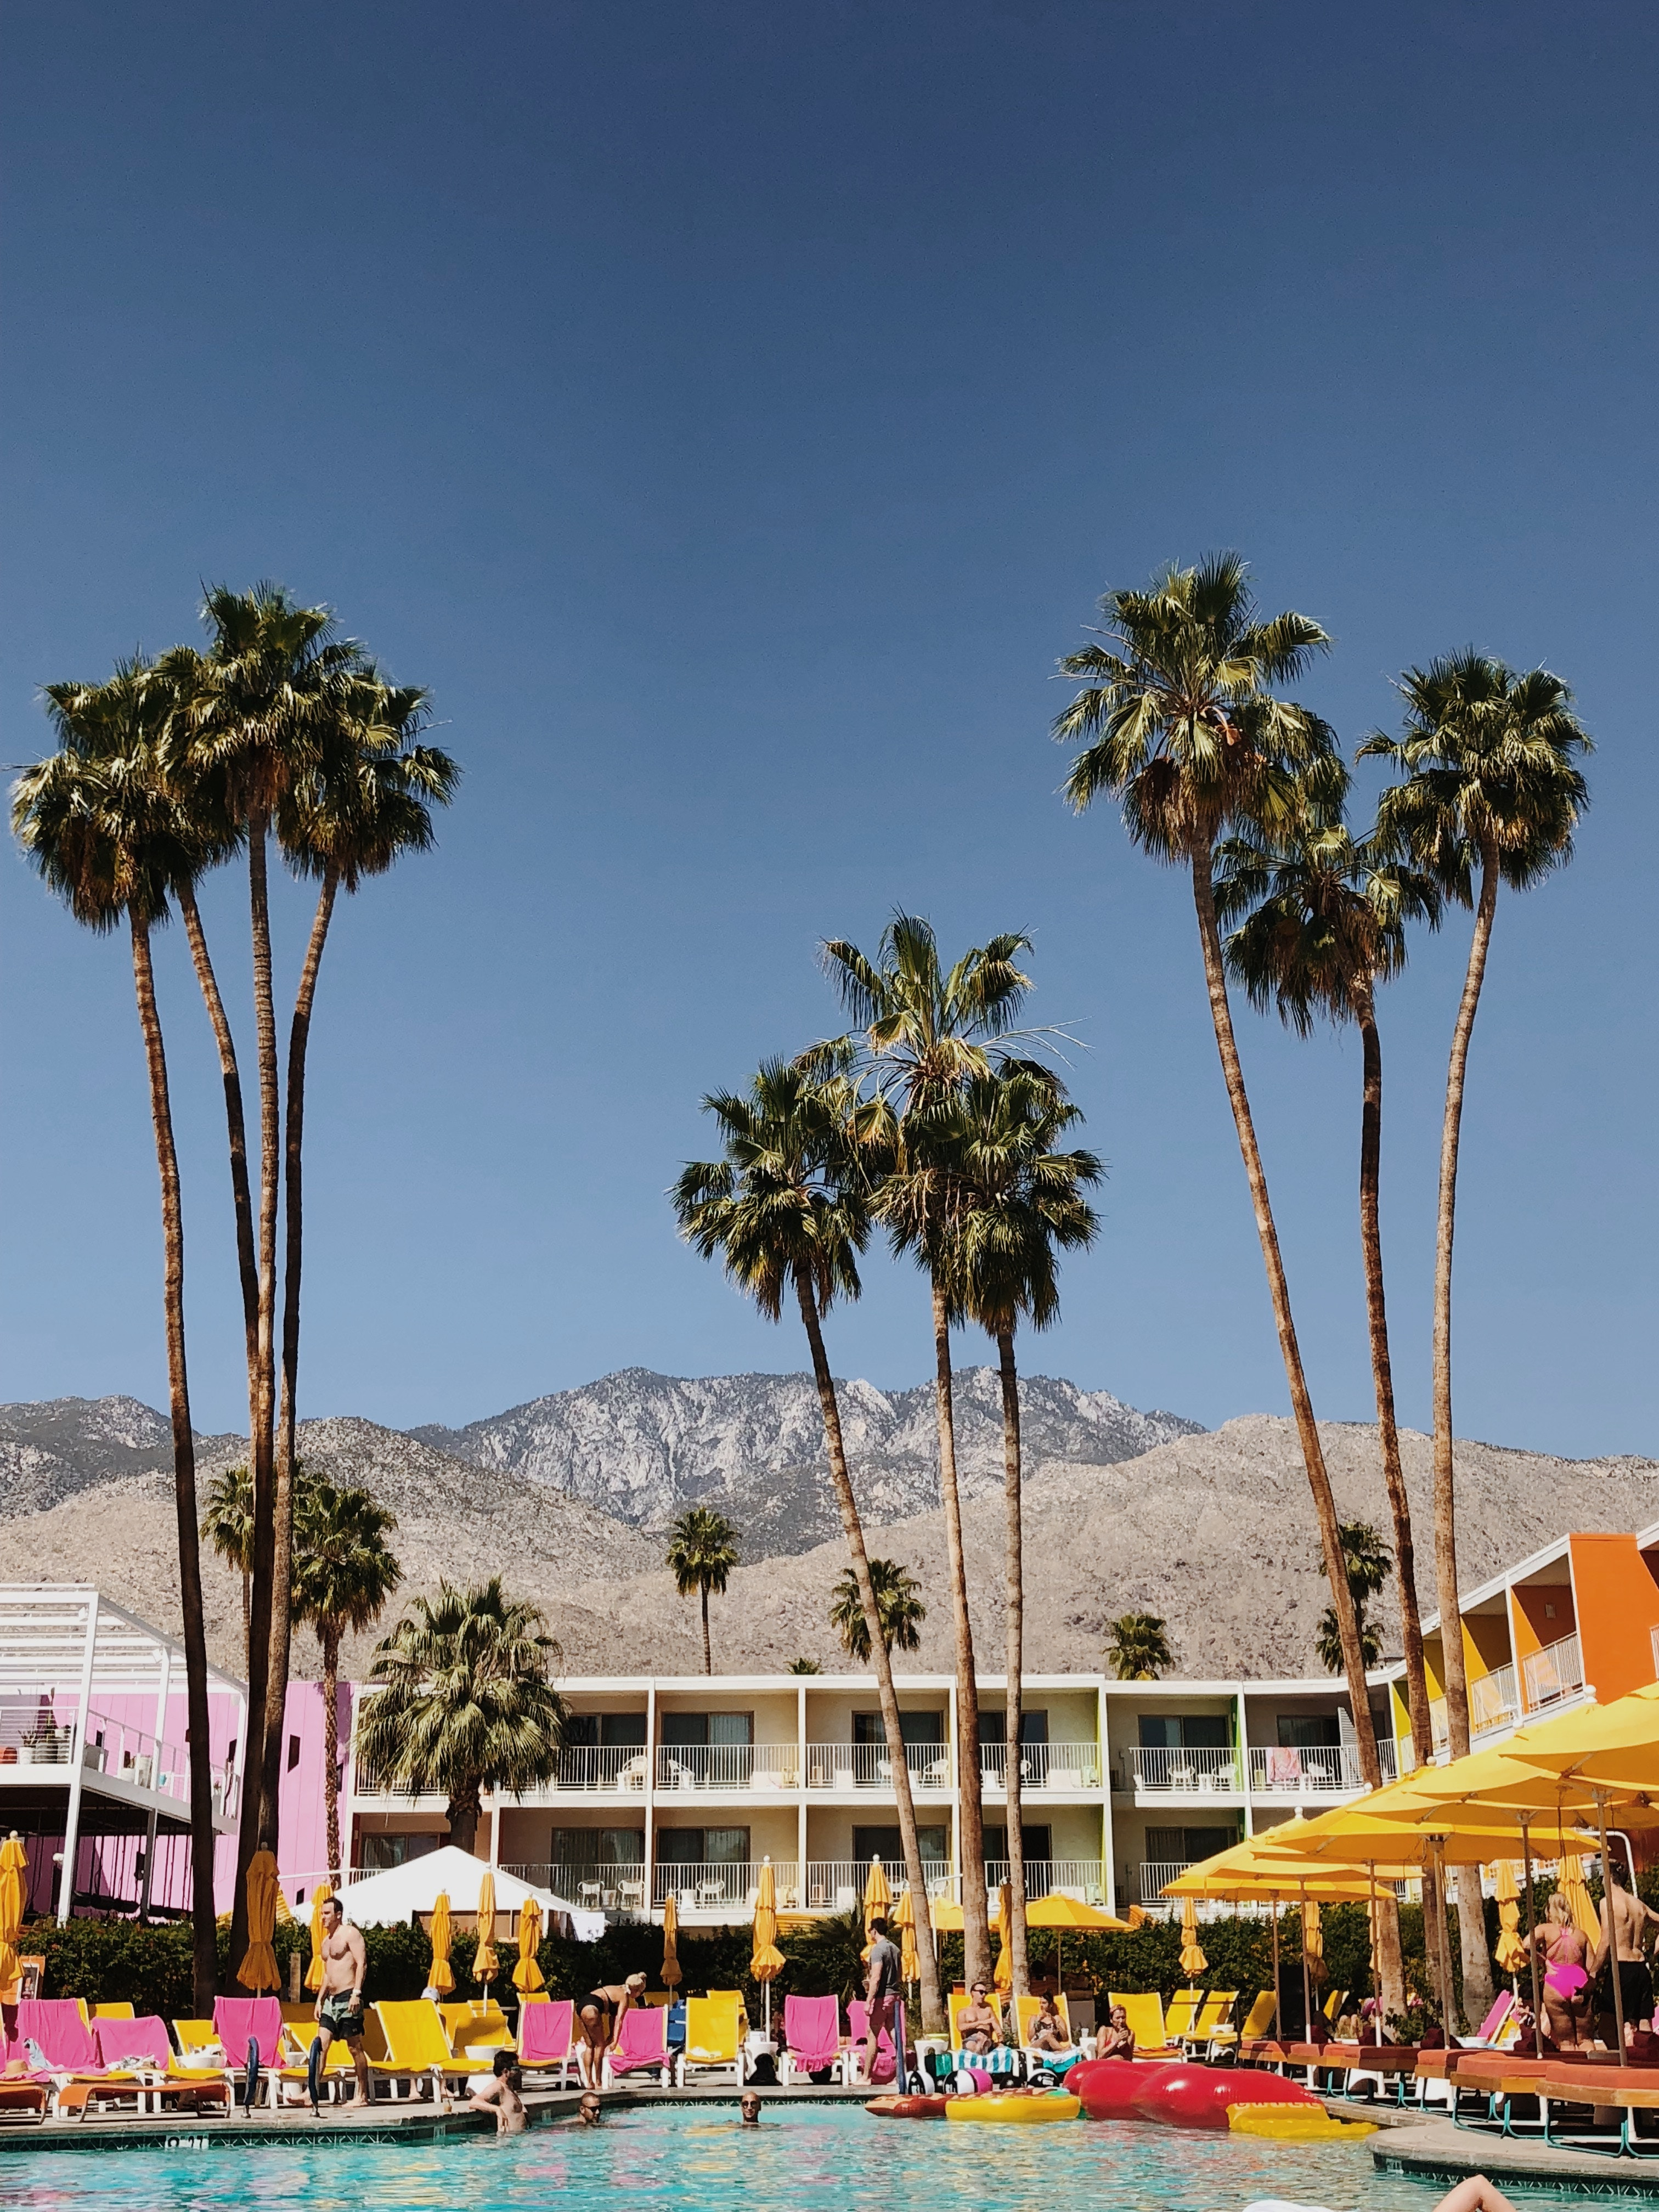 Palm Springs - Places I Would Like To Visit One Day - Communikait by Kait Hanson